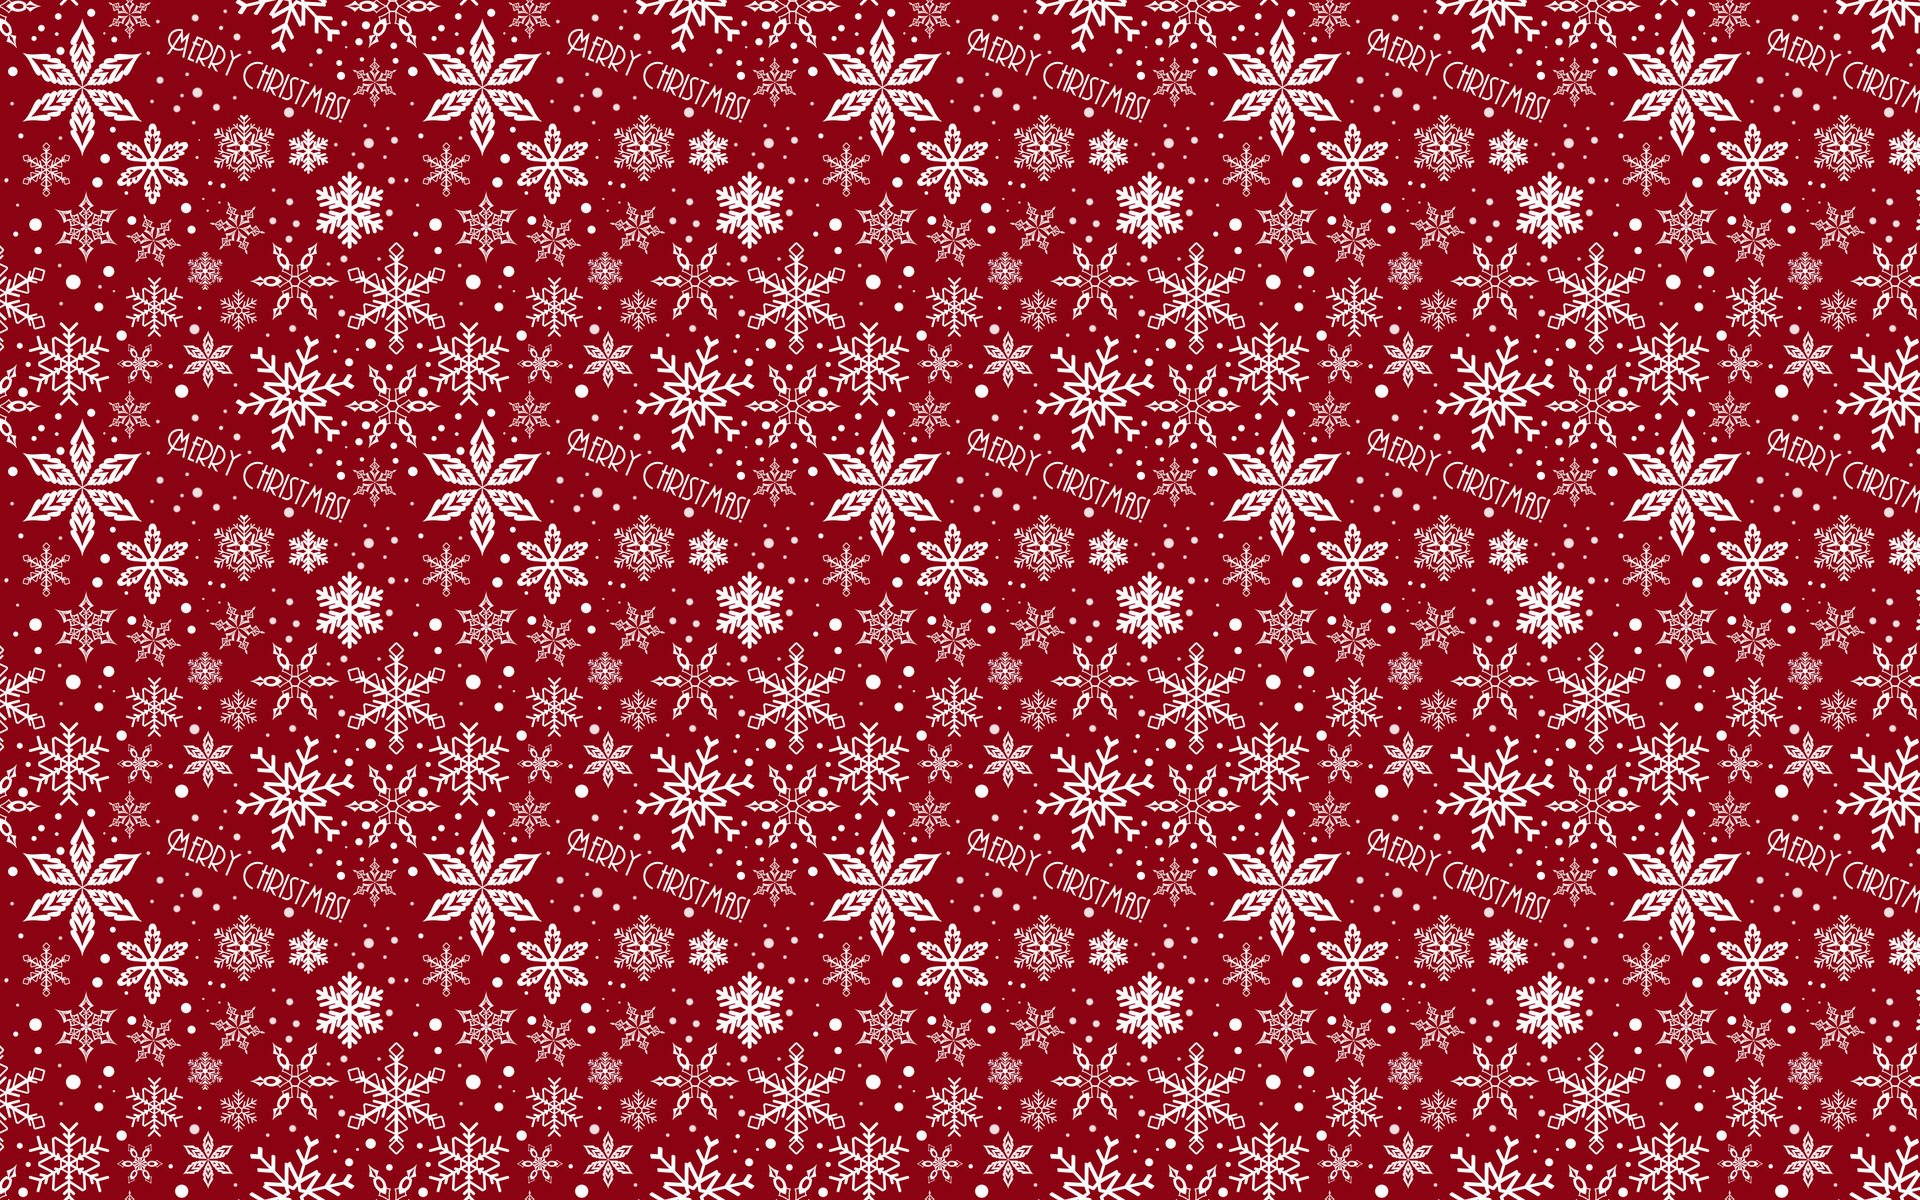 Christmas Pattern Holiday Hd Wallpaper 1920 1200 5927 Eric Wiley